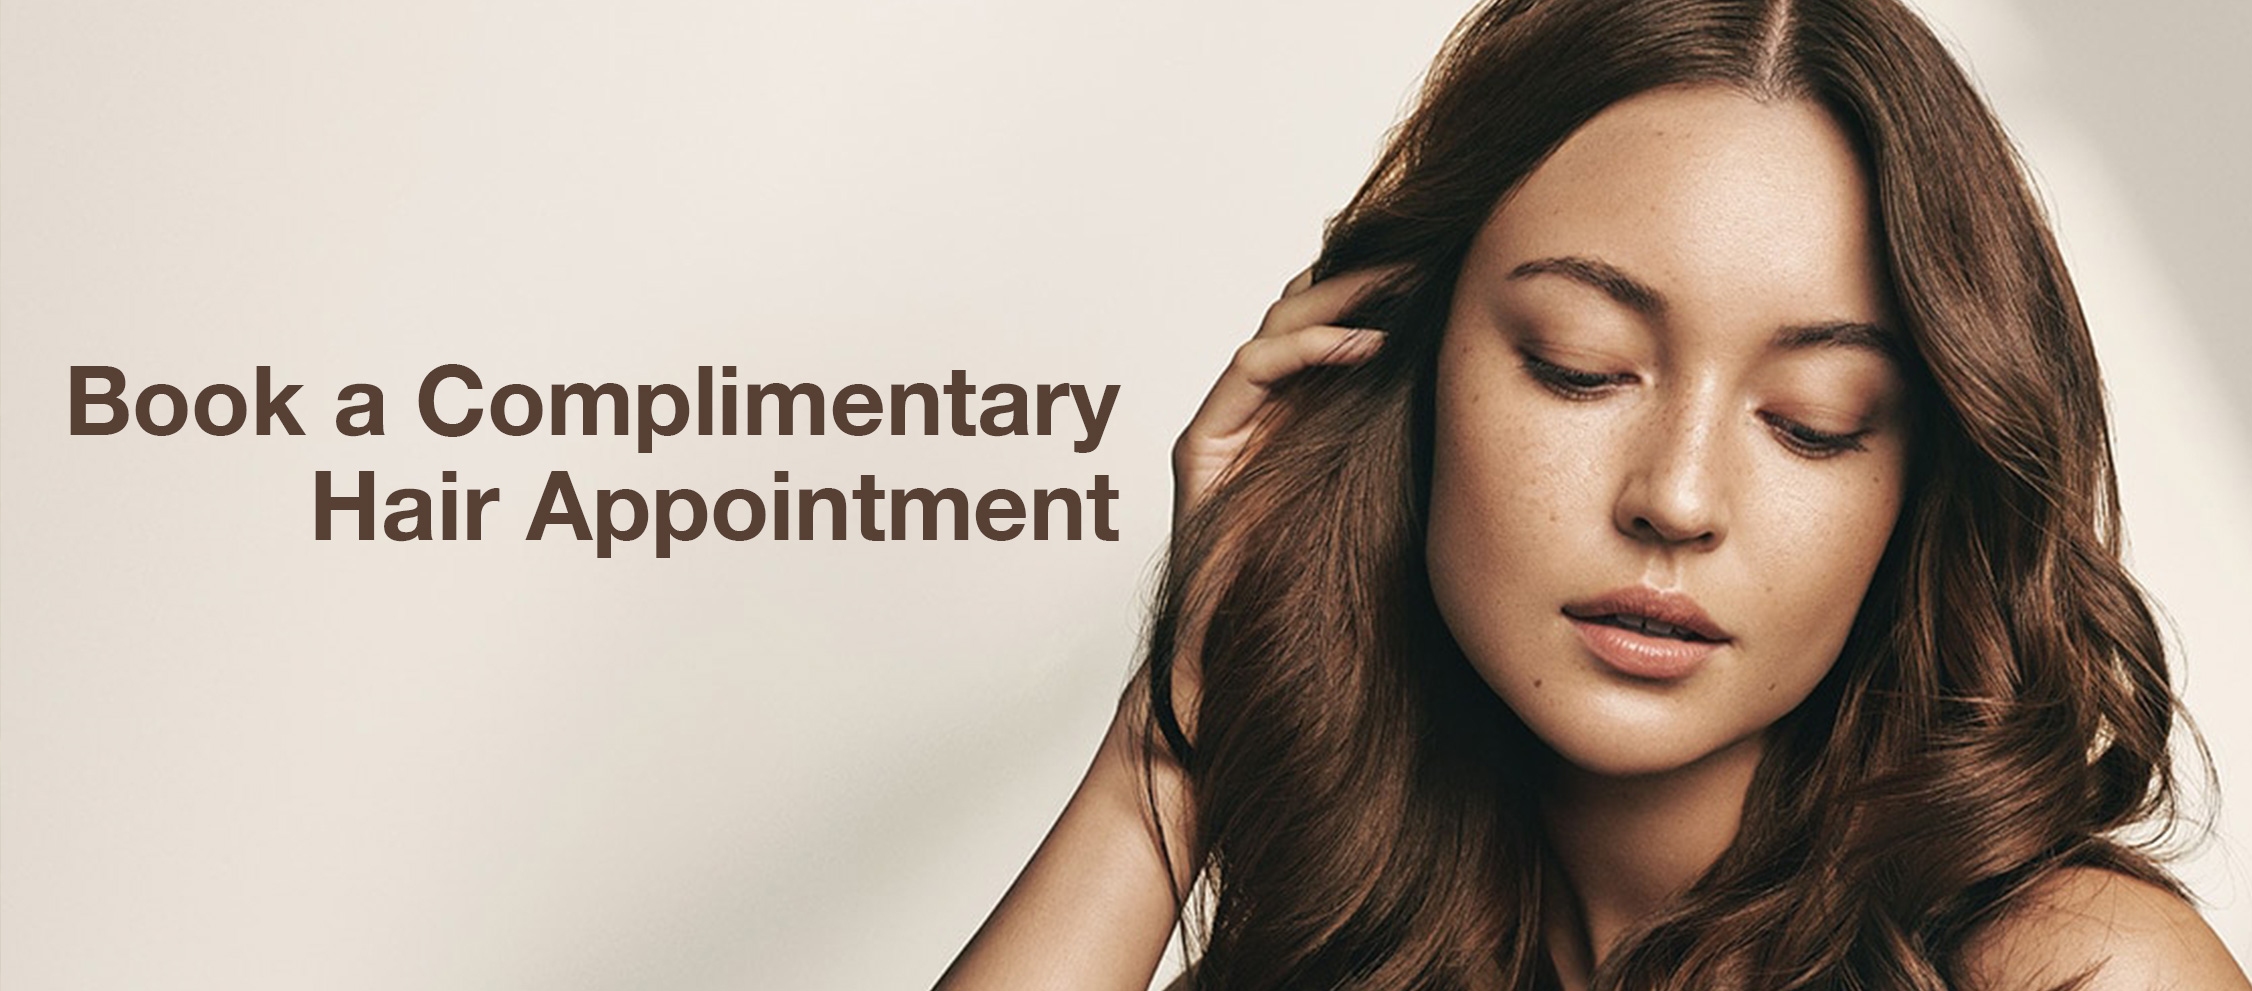 Book a Complimentary Hair Appointment